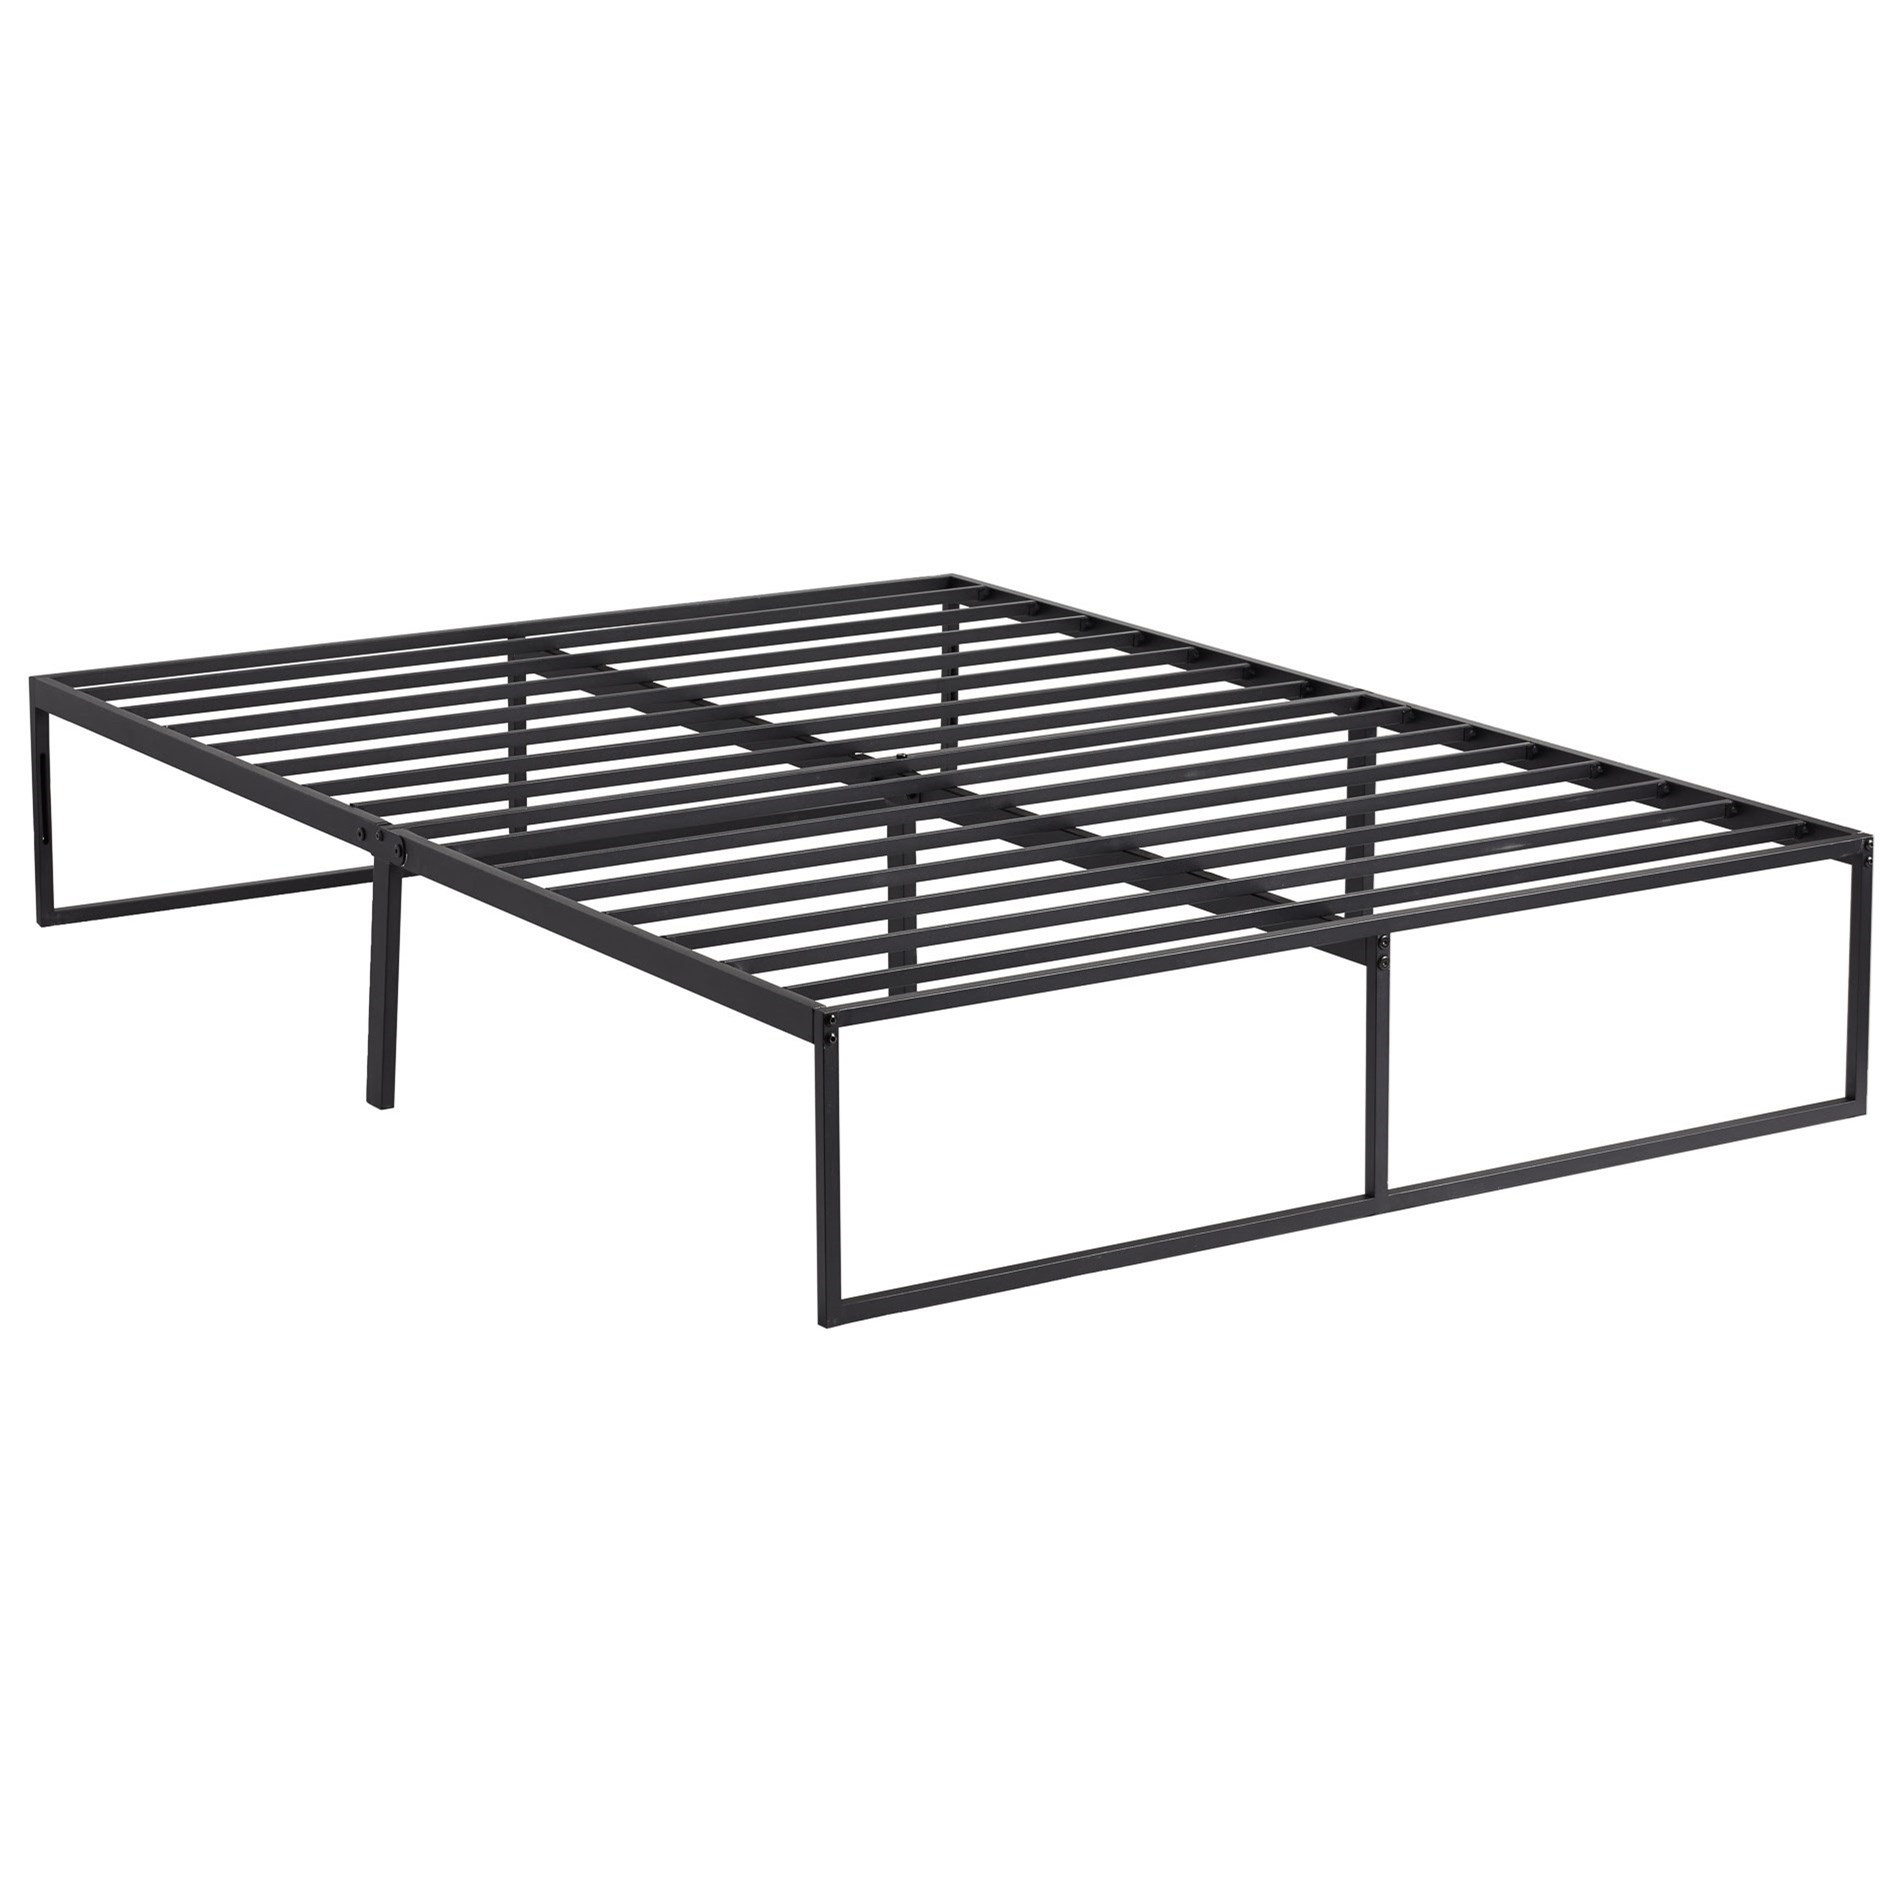 "Weekender14 Metal Platform Twin 14"" High Metal Platform Frame by Malouf at Standard Furniture"